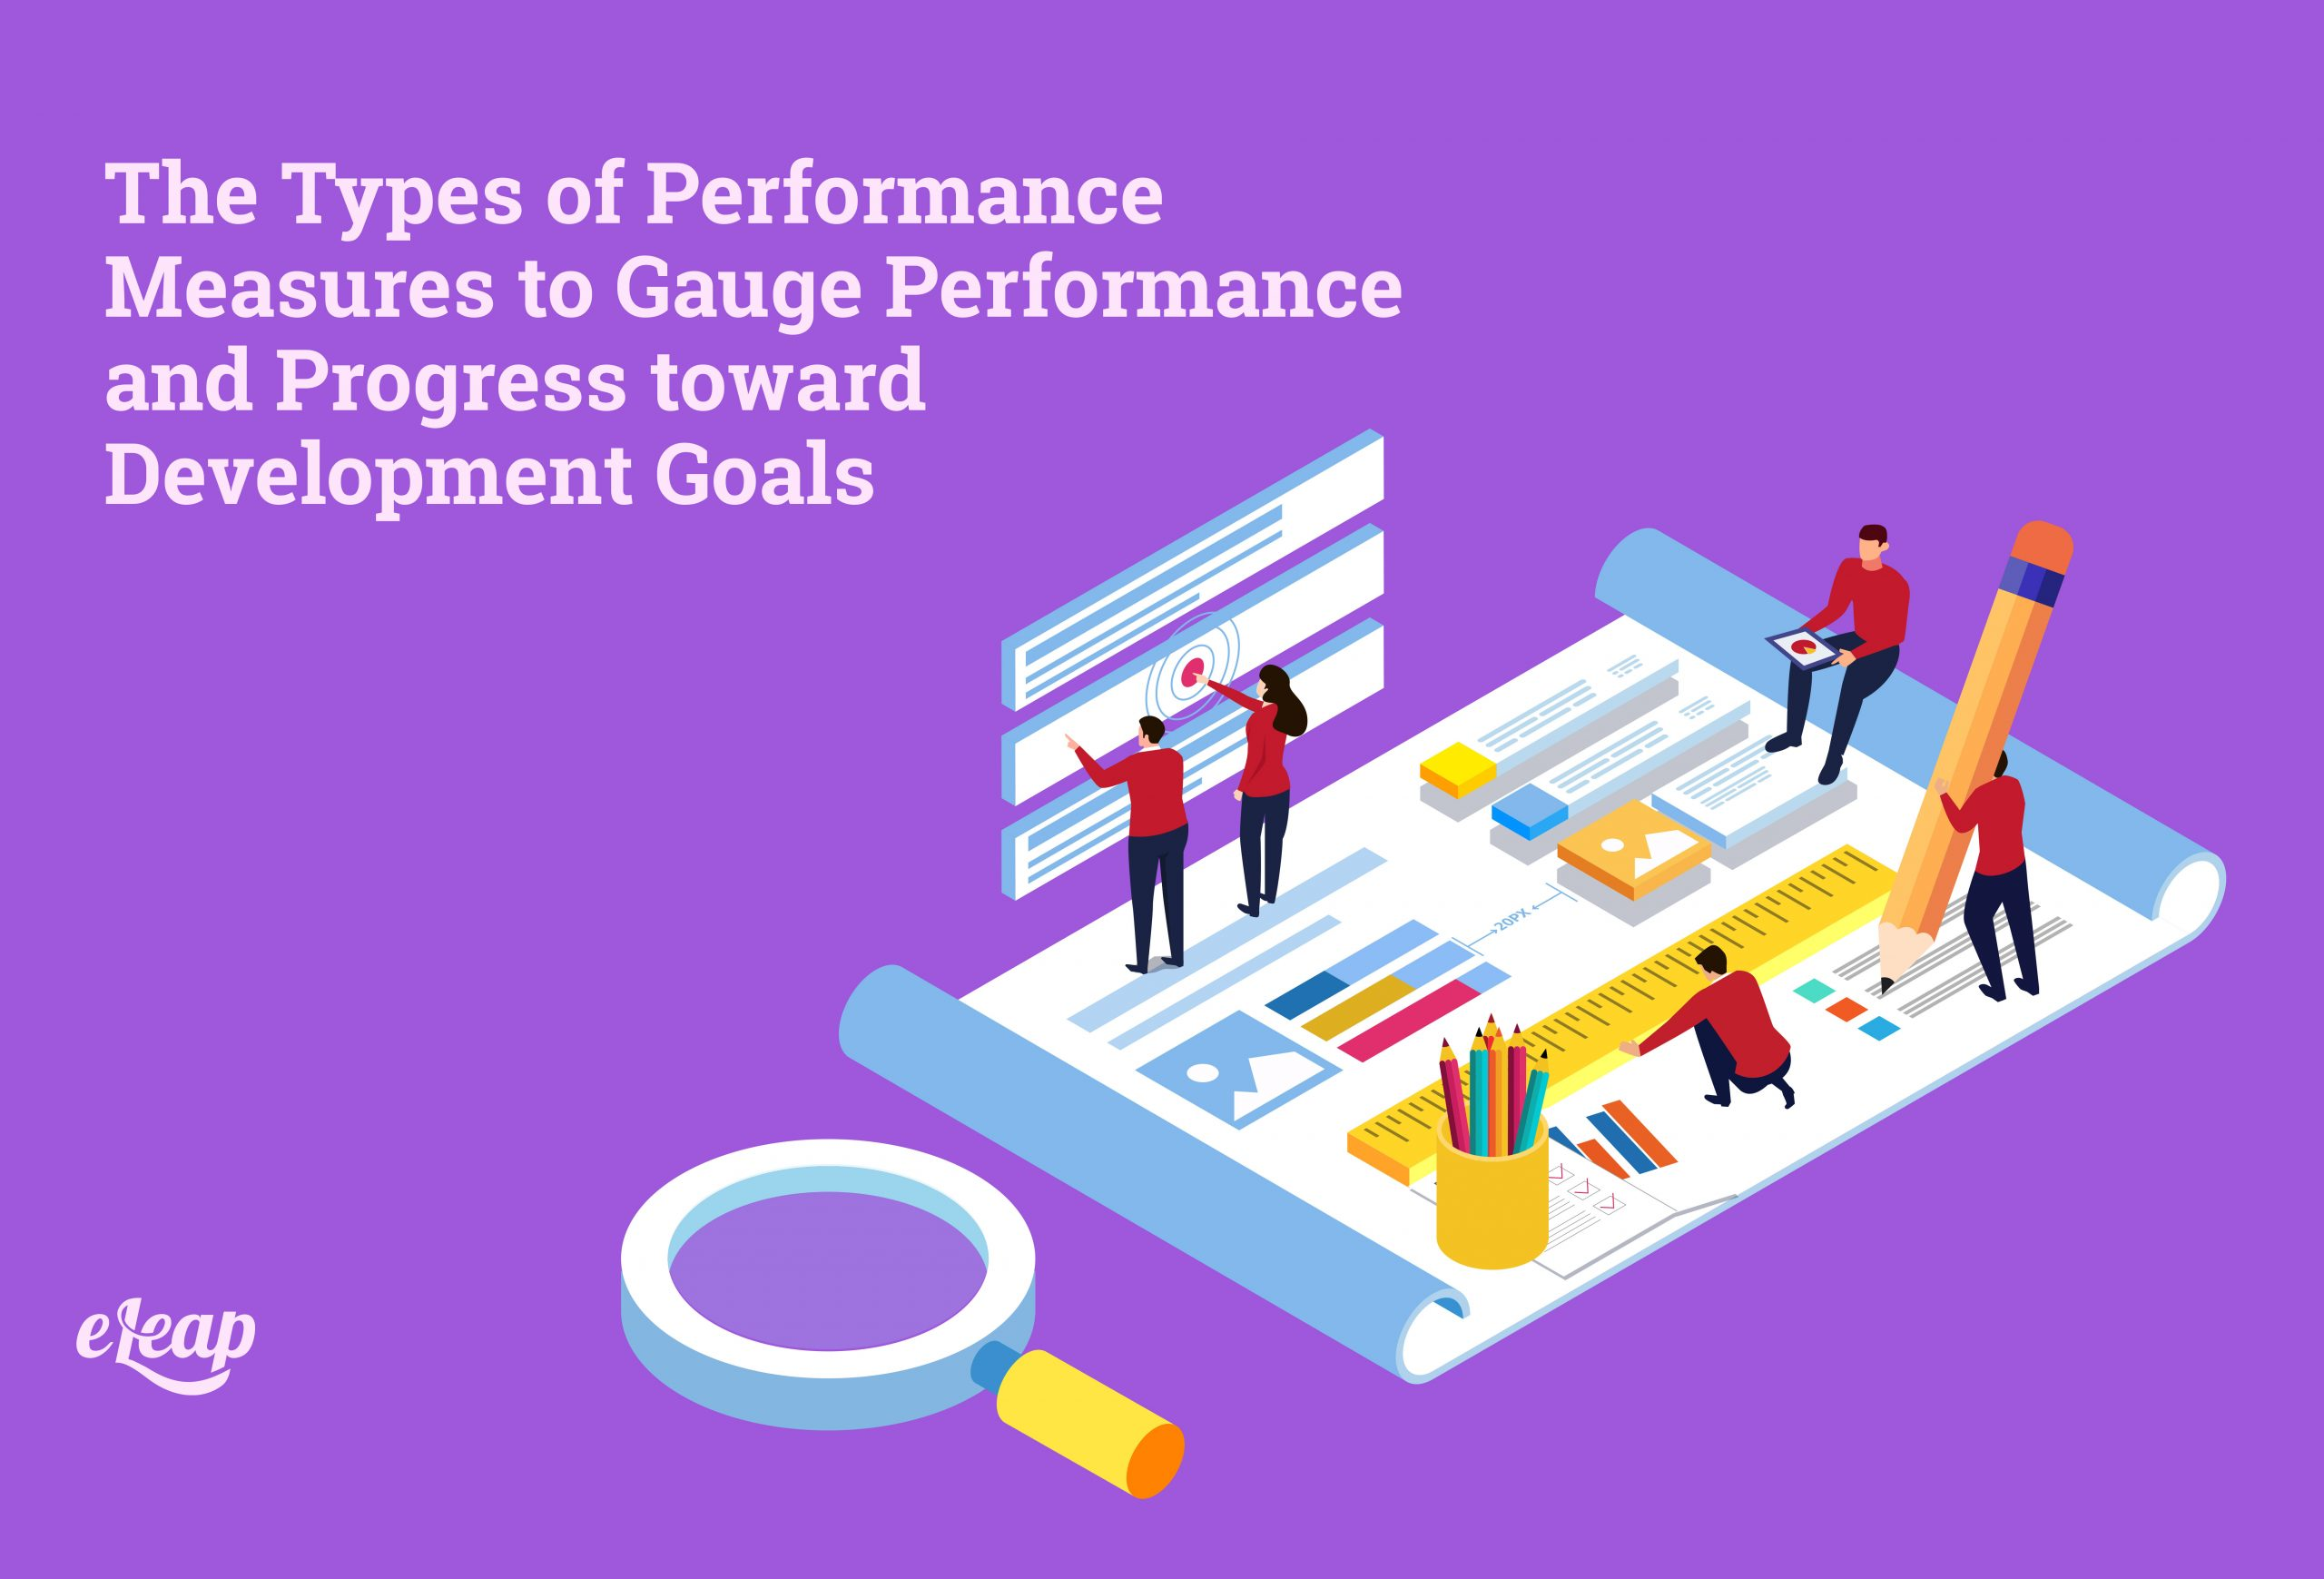 The Types of Performance Measures to Gauge Performance and Progress toward Development Goals